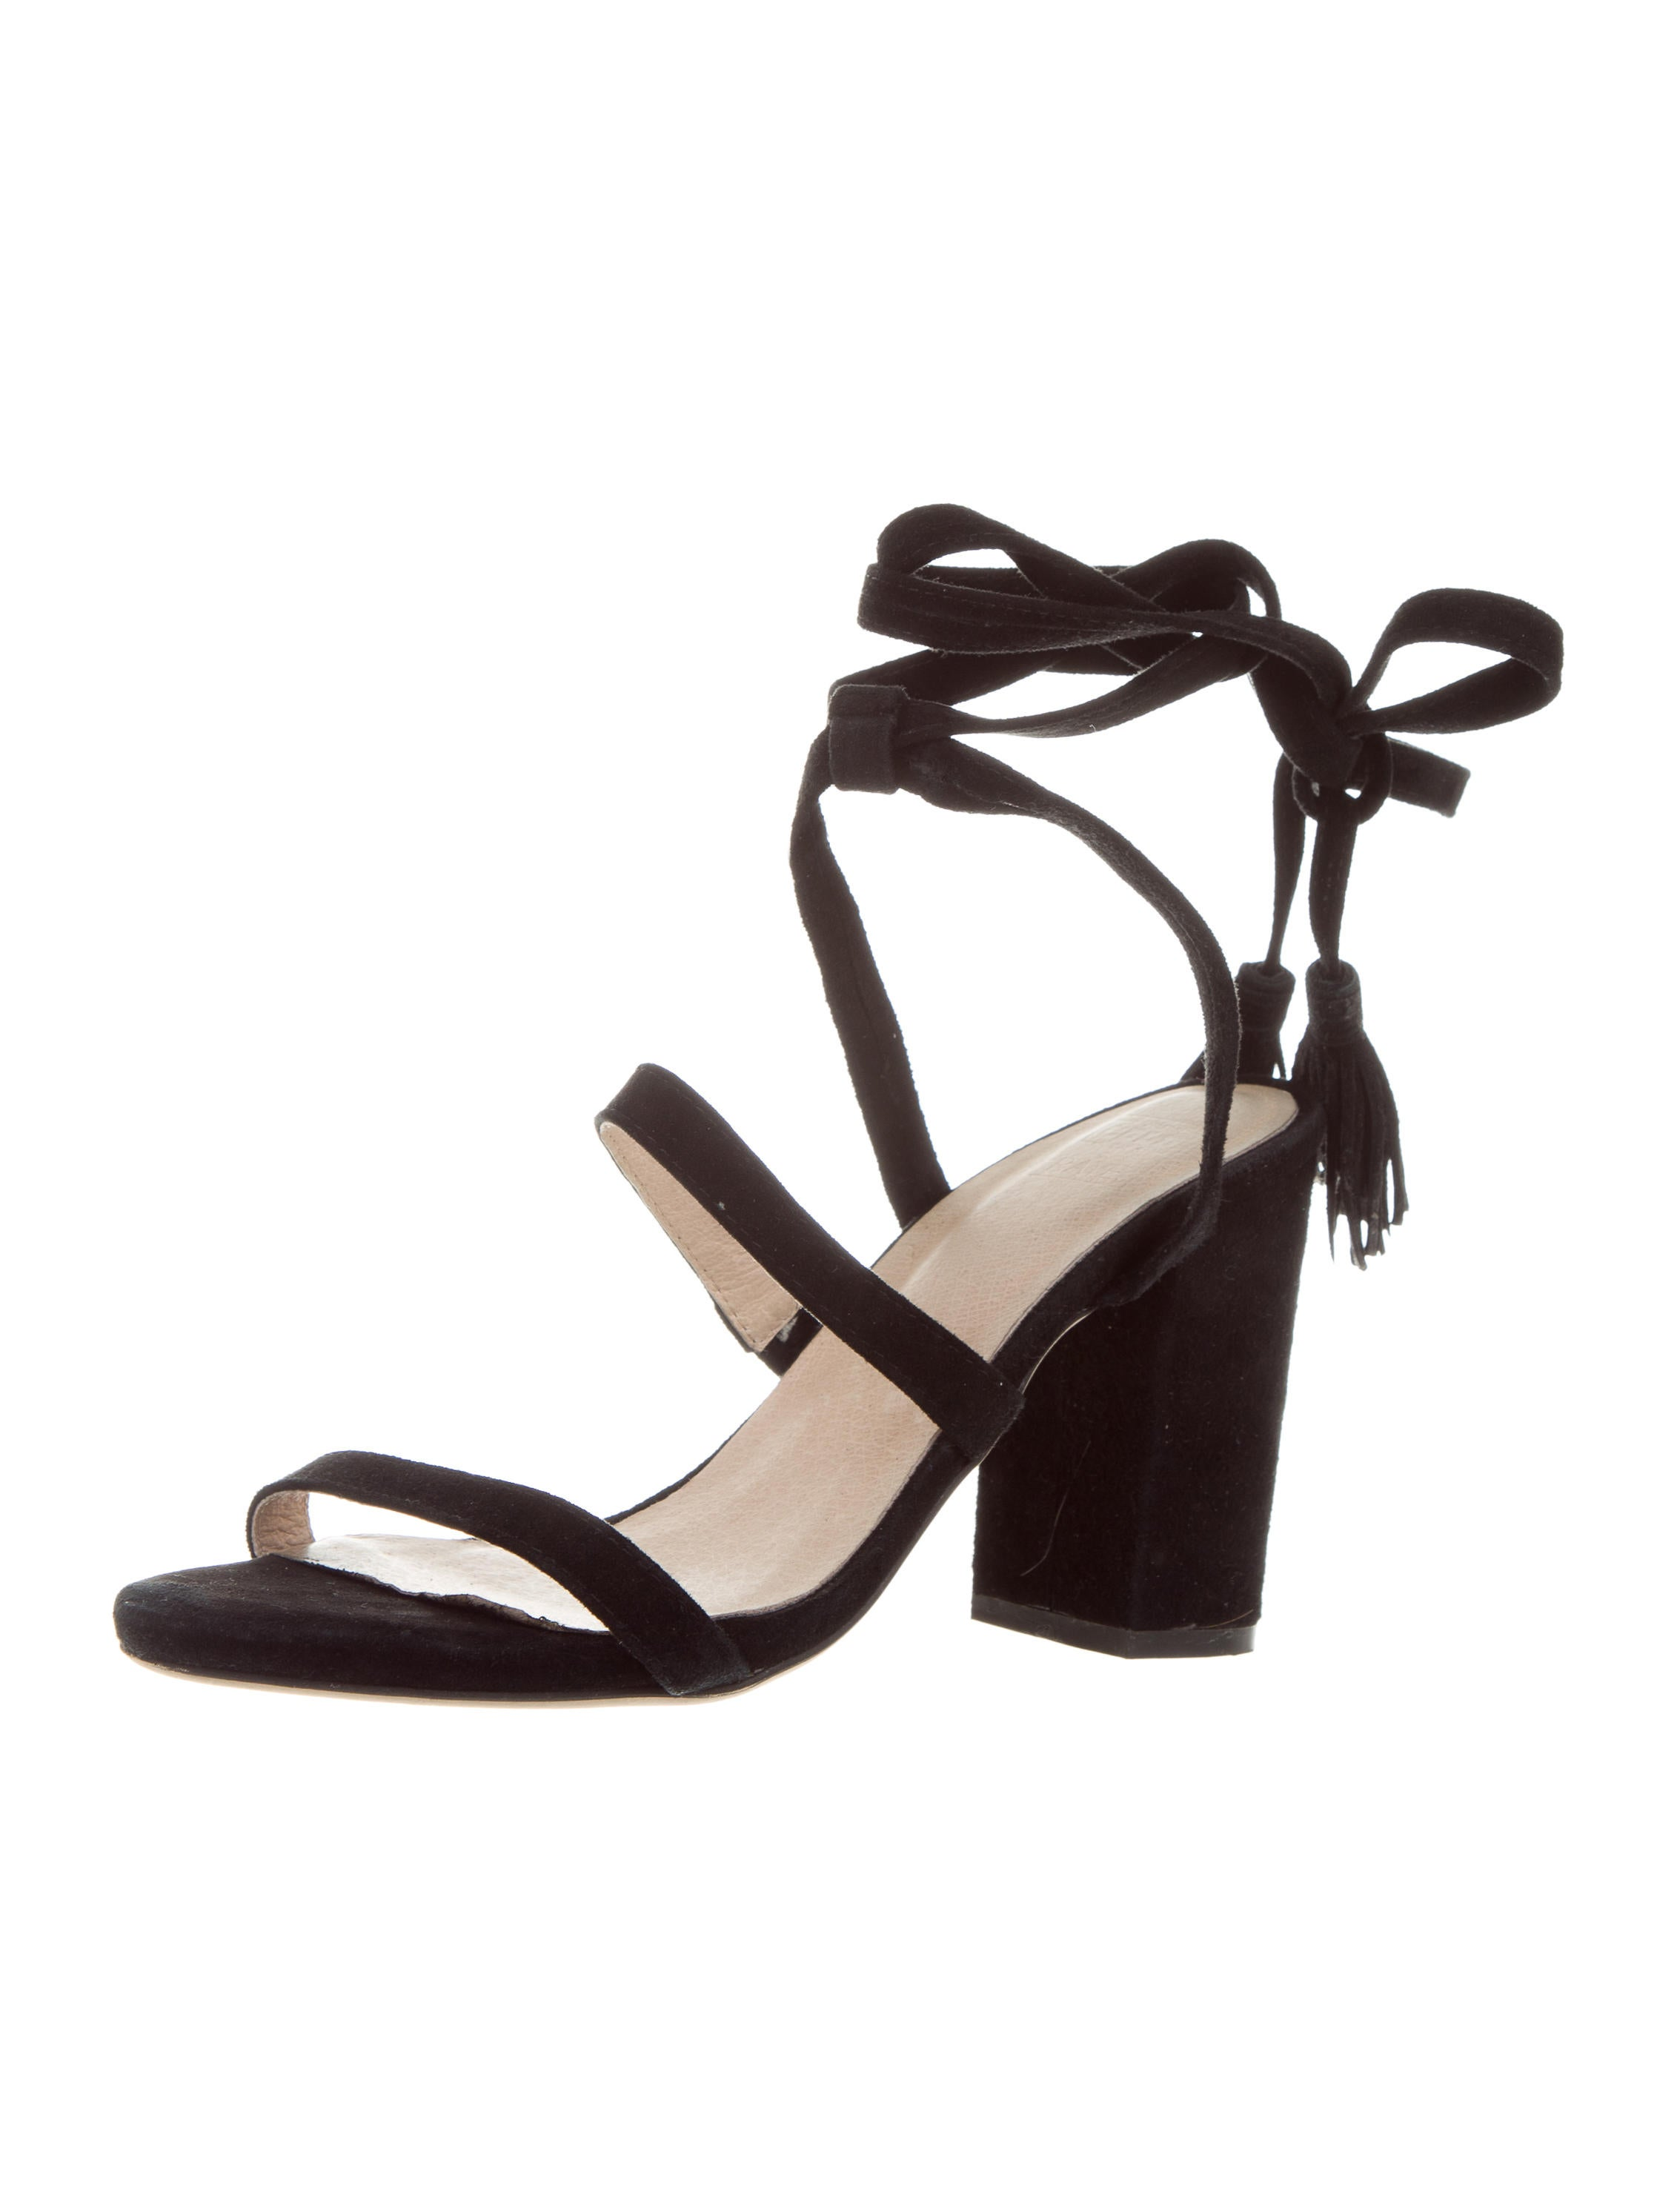 clearance marketable Raye Henna Lace-Up Sandals sale shop offer sale visit new cheap new sneakernews online an0wBz